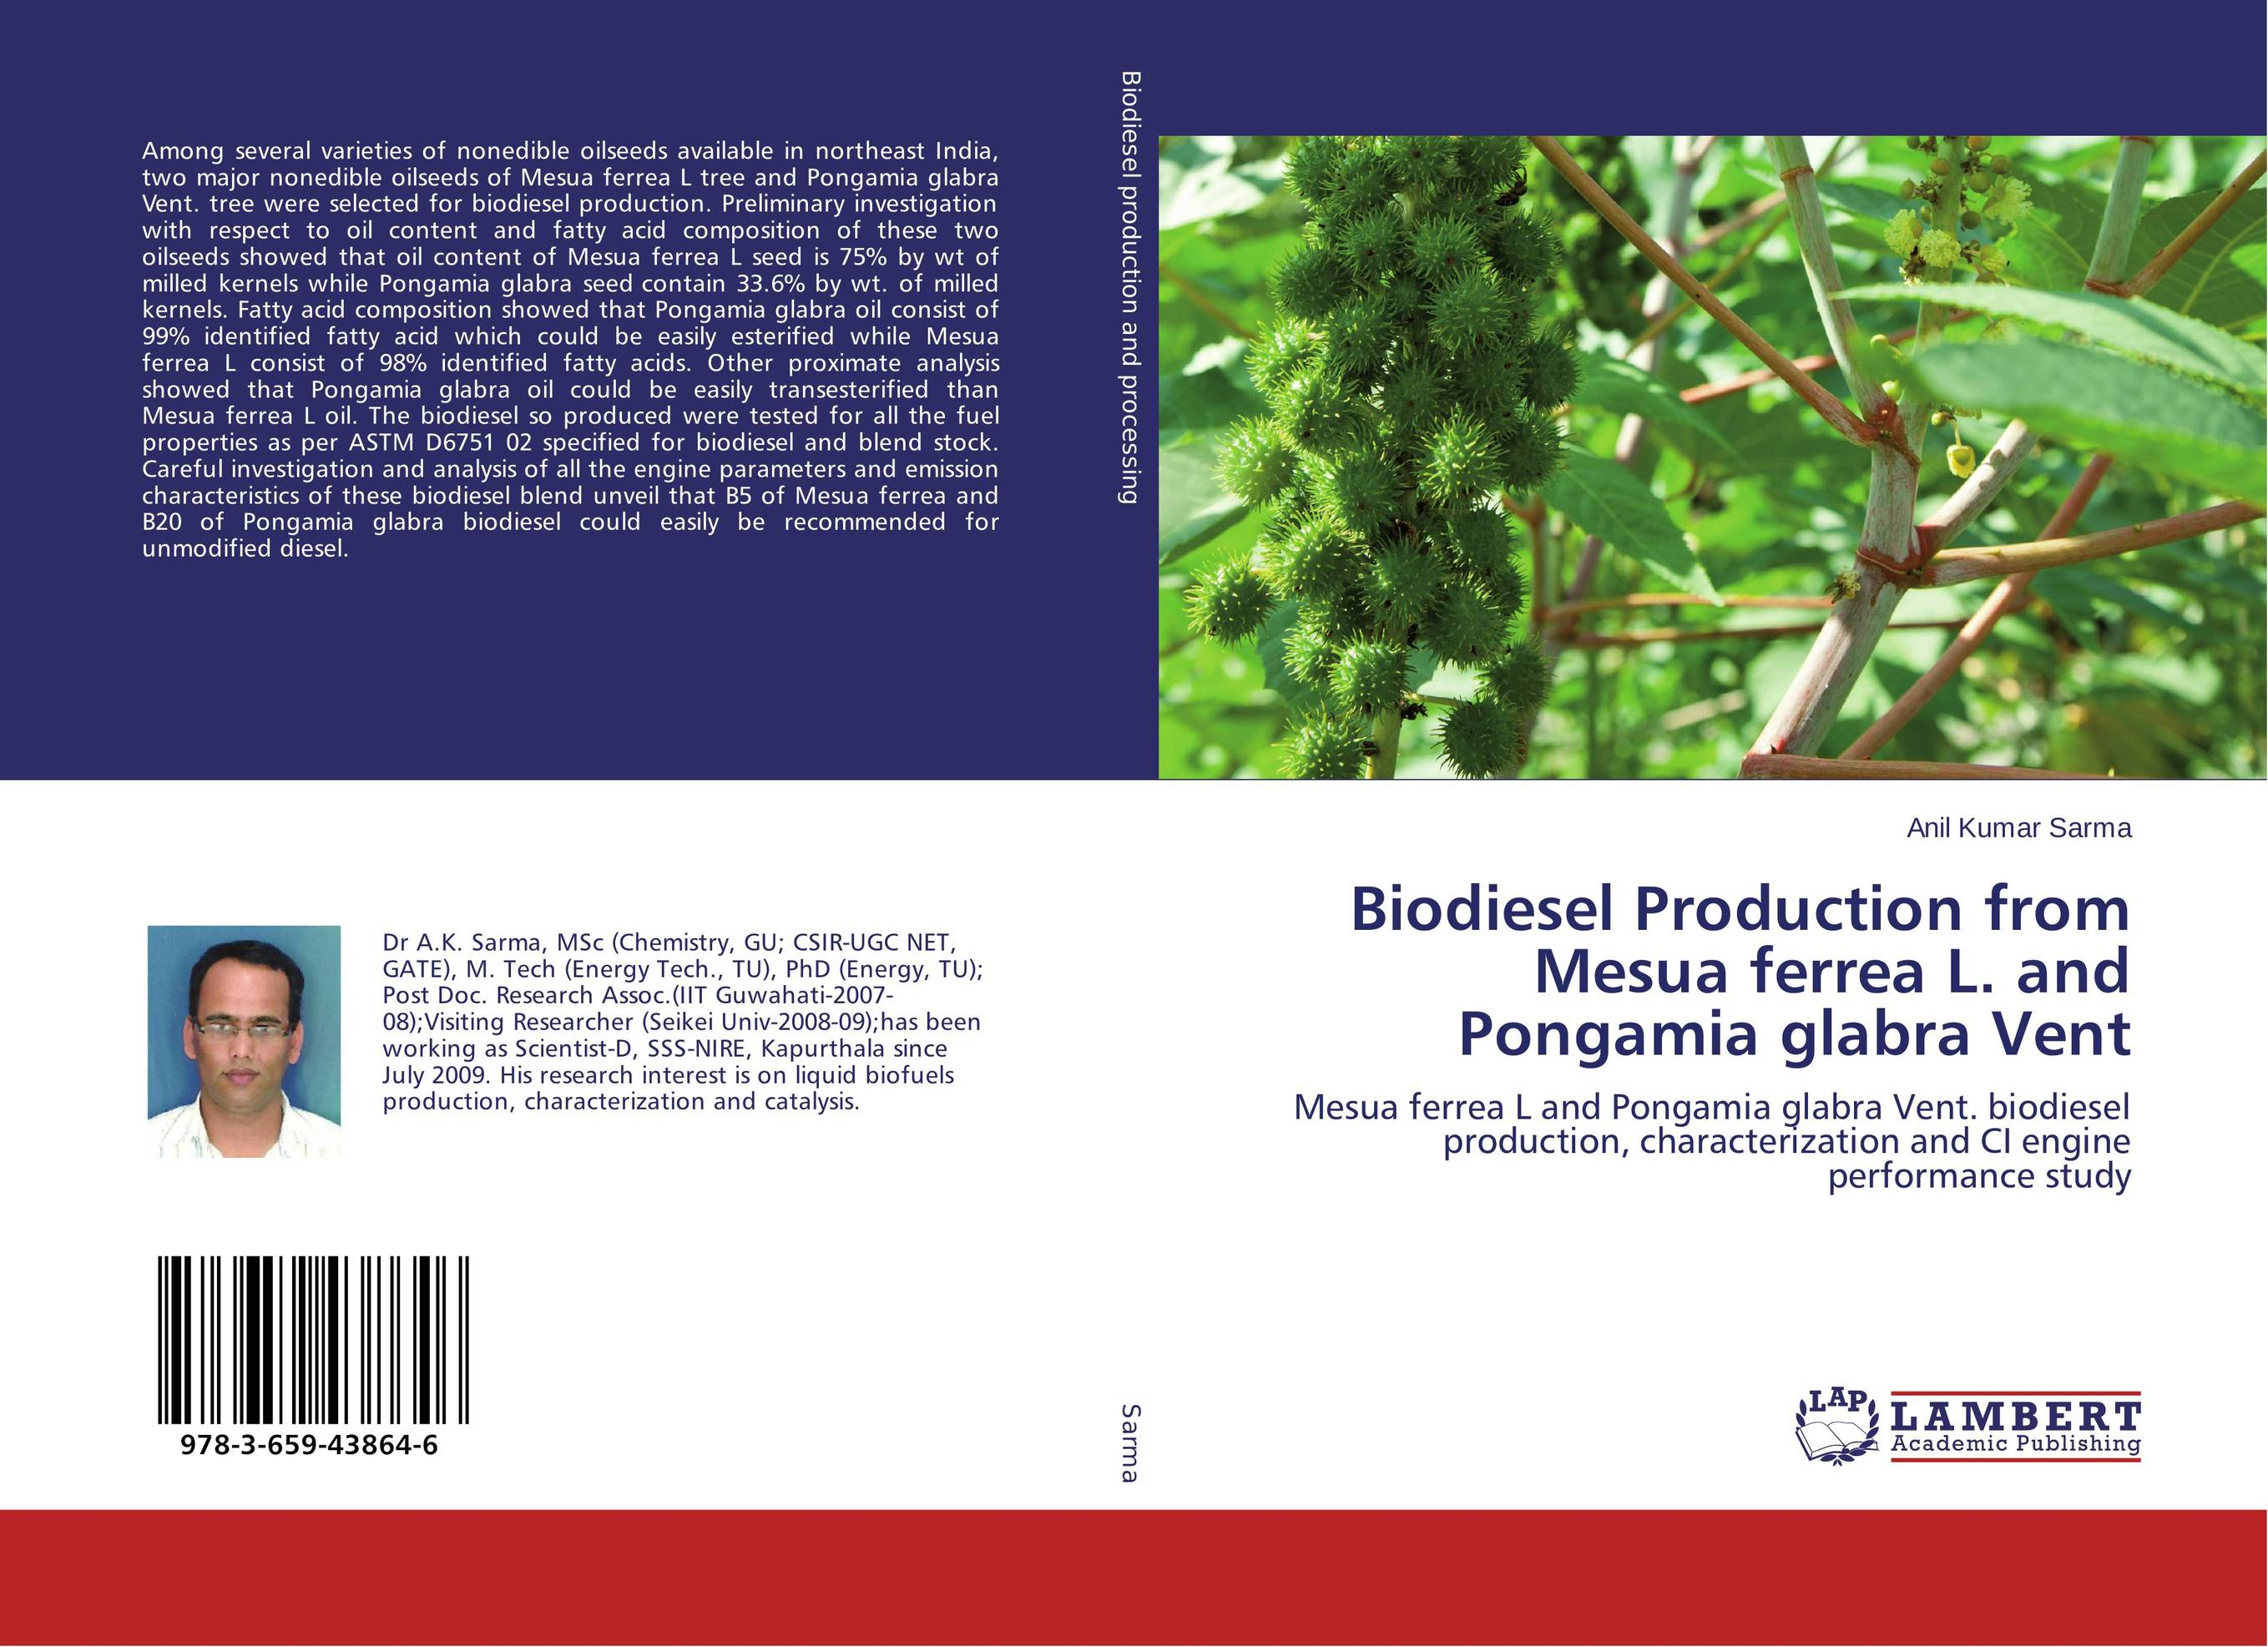 Biodiesel Production from Mesua ferrea L. and Pongamia glabra Vent parametric optimization of engine for pyrolysis oil and diesel blend